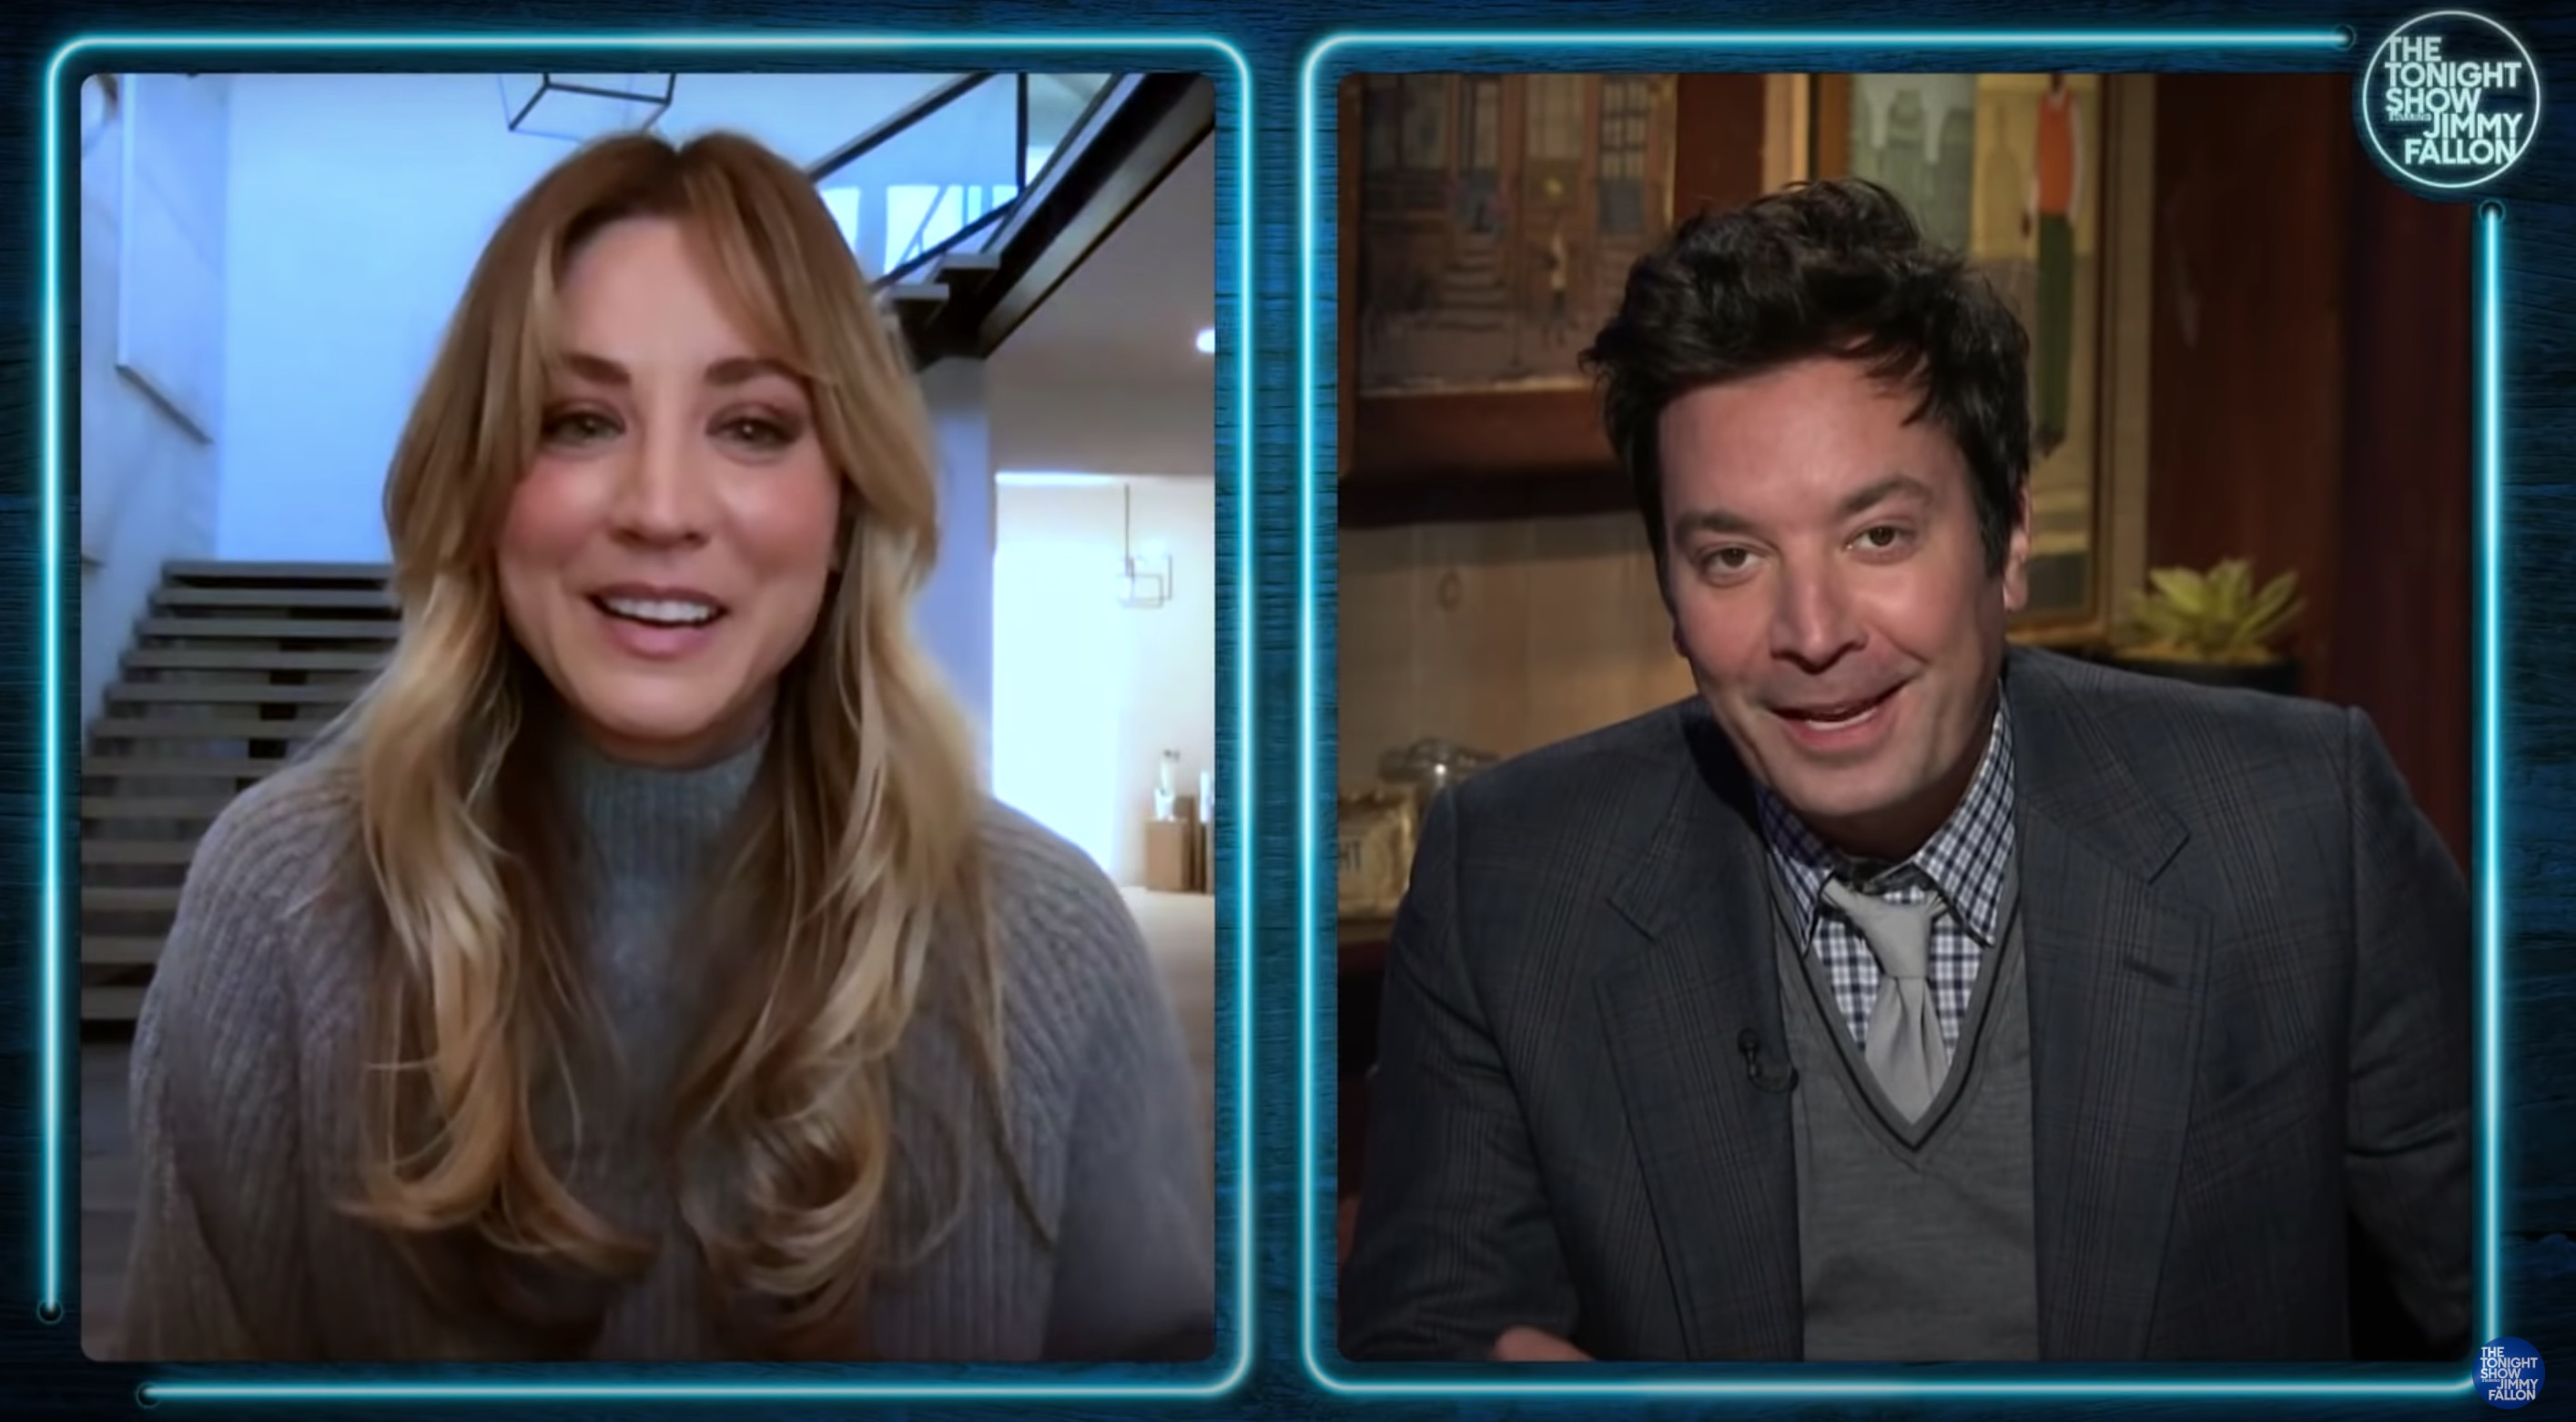 Kaley Cuoco Tells Jimmy Fallon About Her Hair Catching Fire In Italy, Where  She Was Filming 'The Flight Attendant'